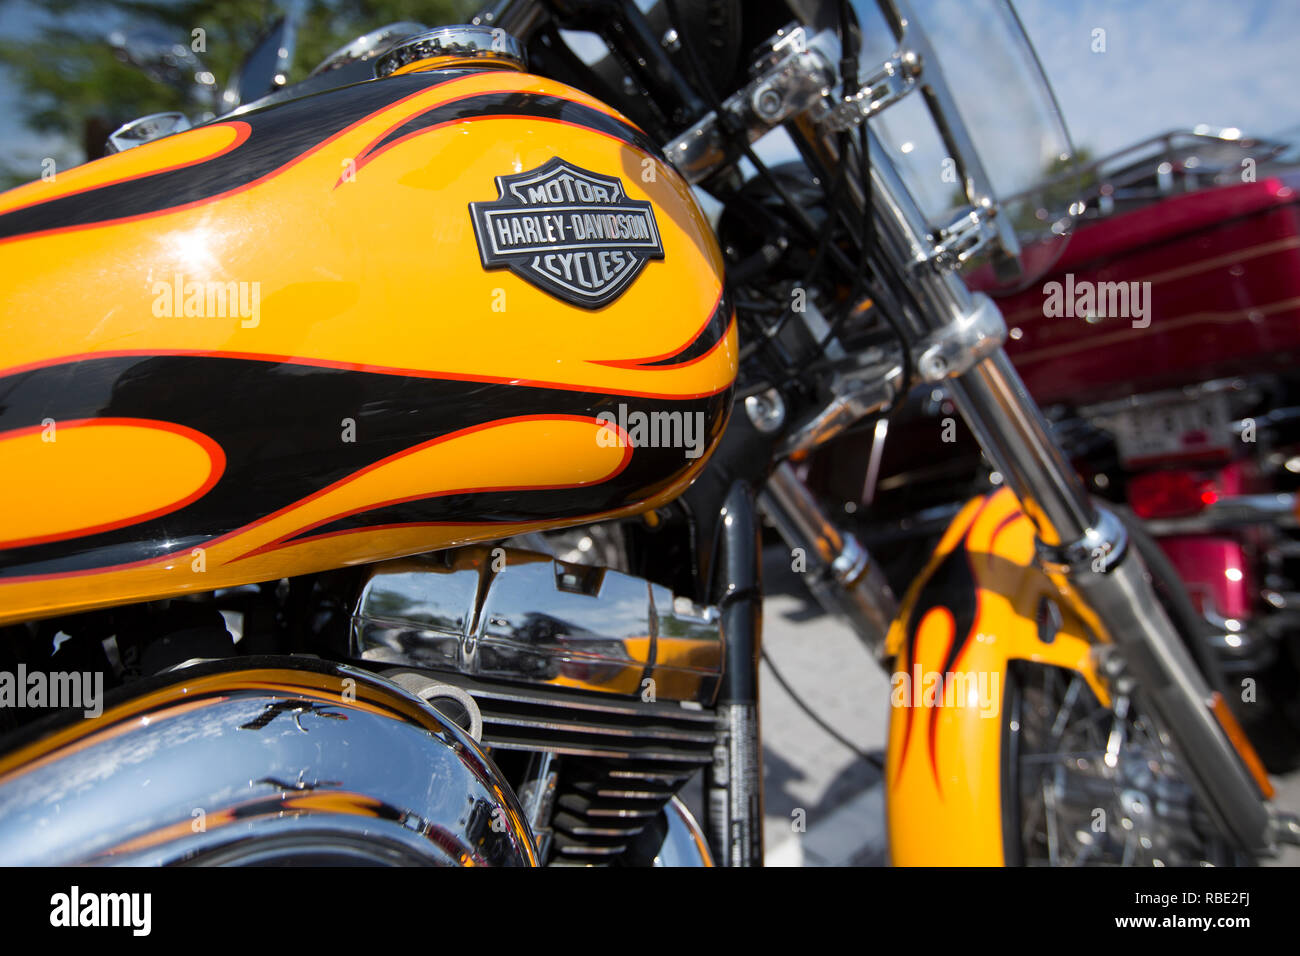 A closeup of a yellow Harley-Davidson gas tank with black and red painted flames and a classic Harley-Davison logo - Stock Image